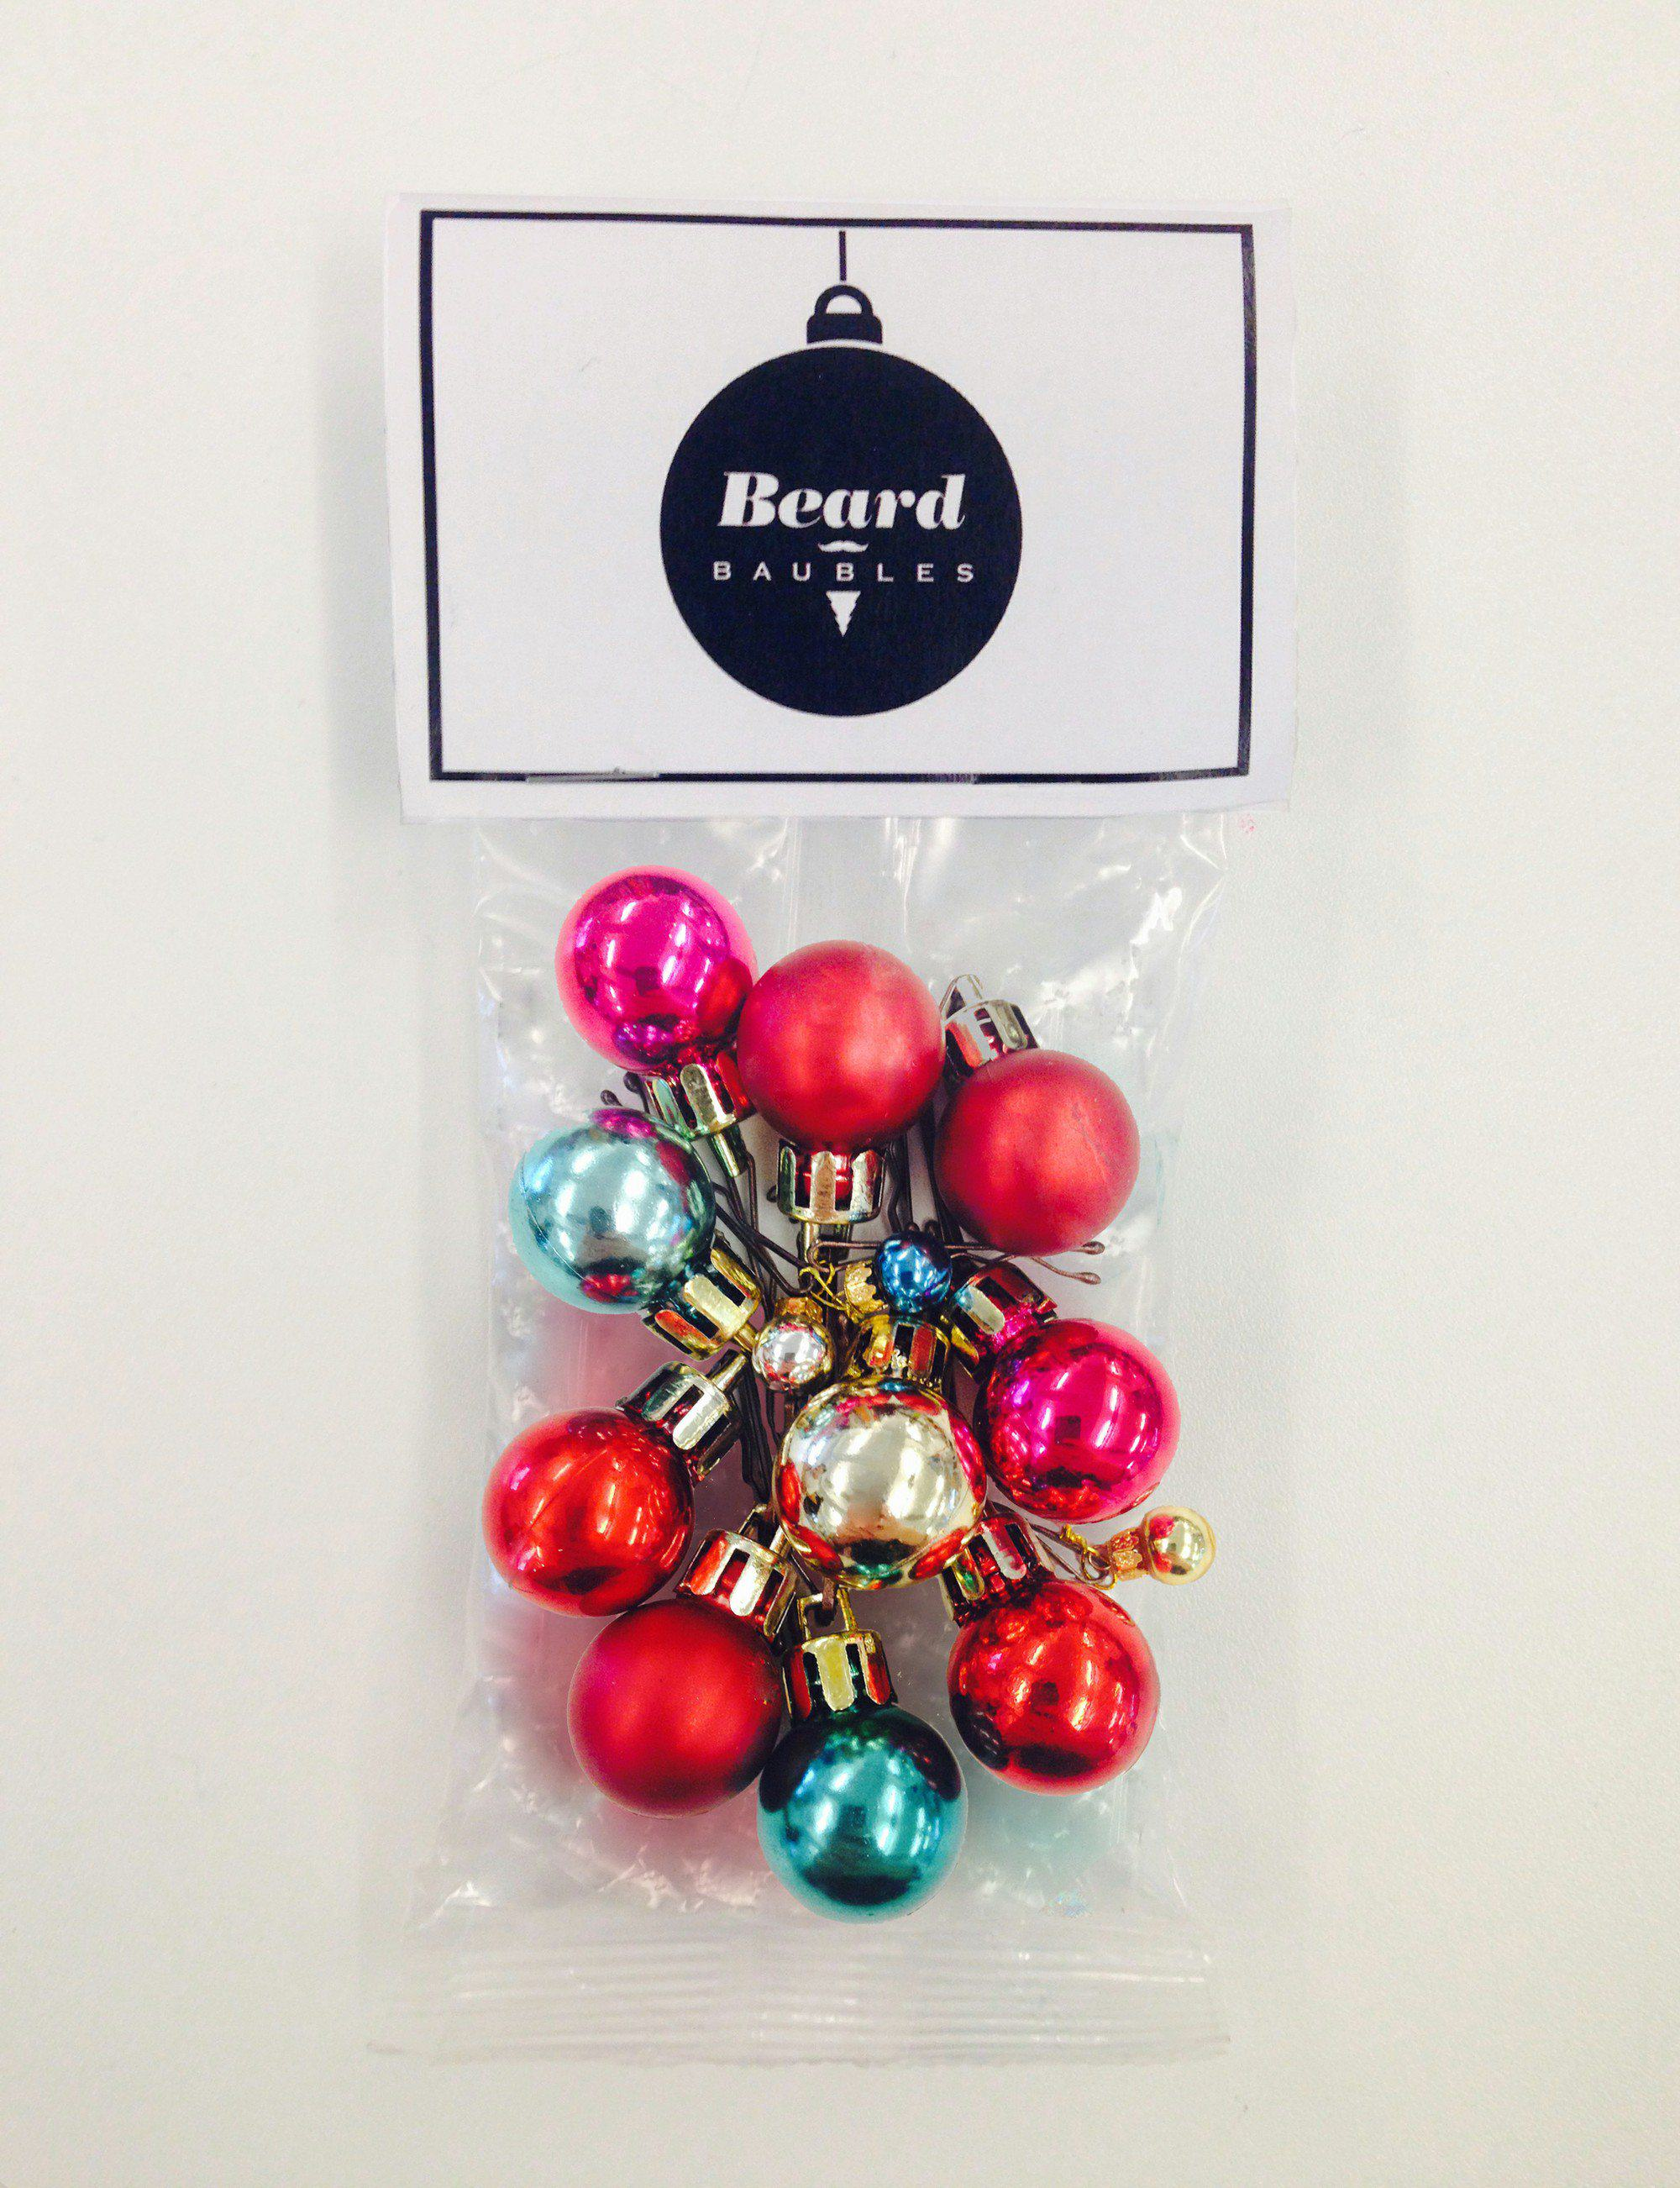 Beard Baubles Are The Latest Fashion Accessory For Hipsters This Christmas %name